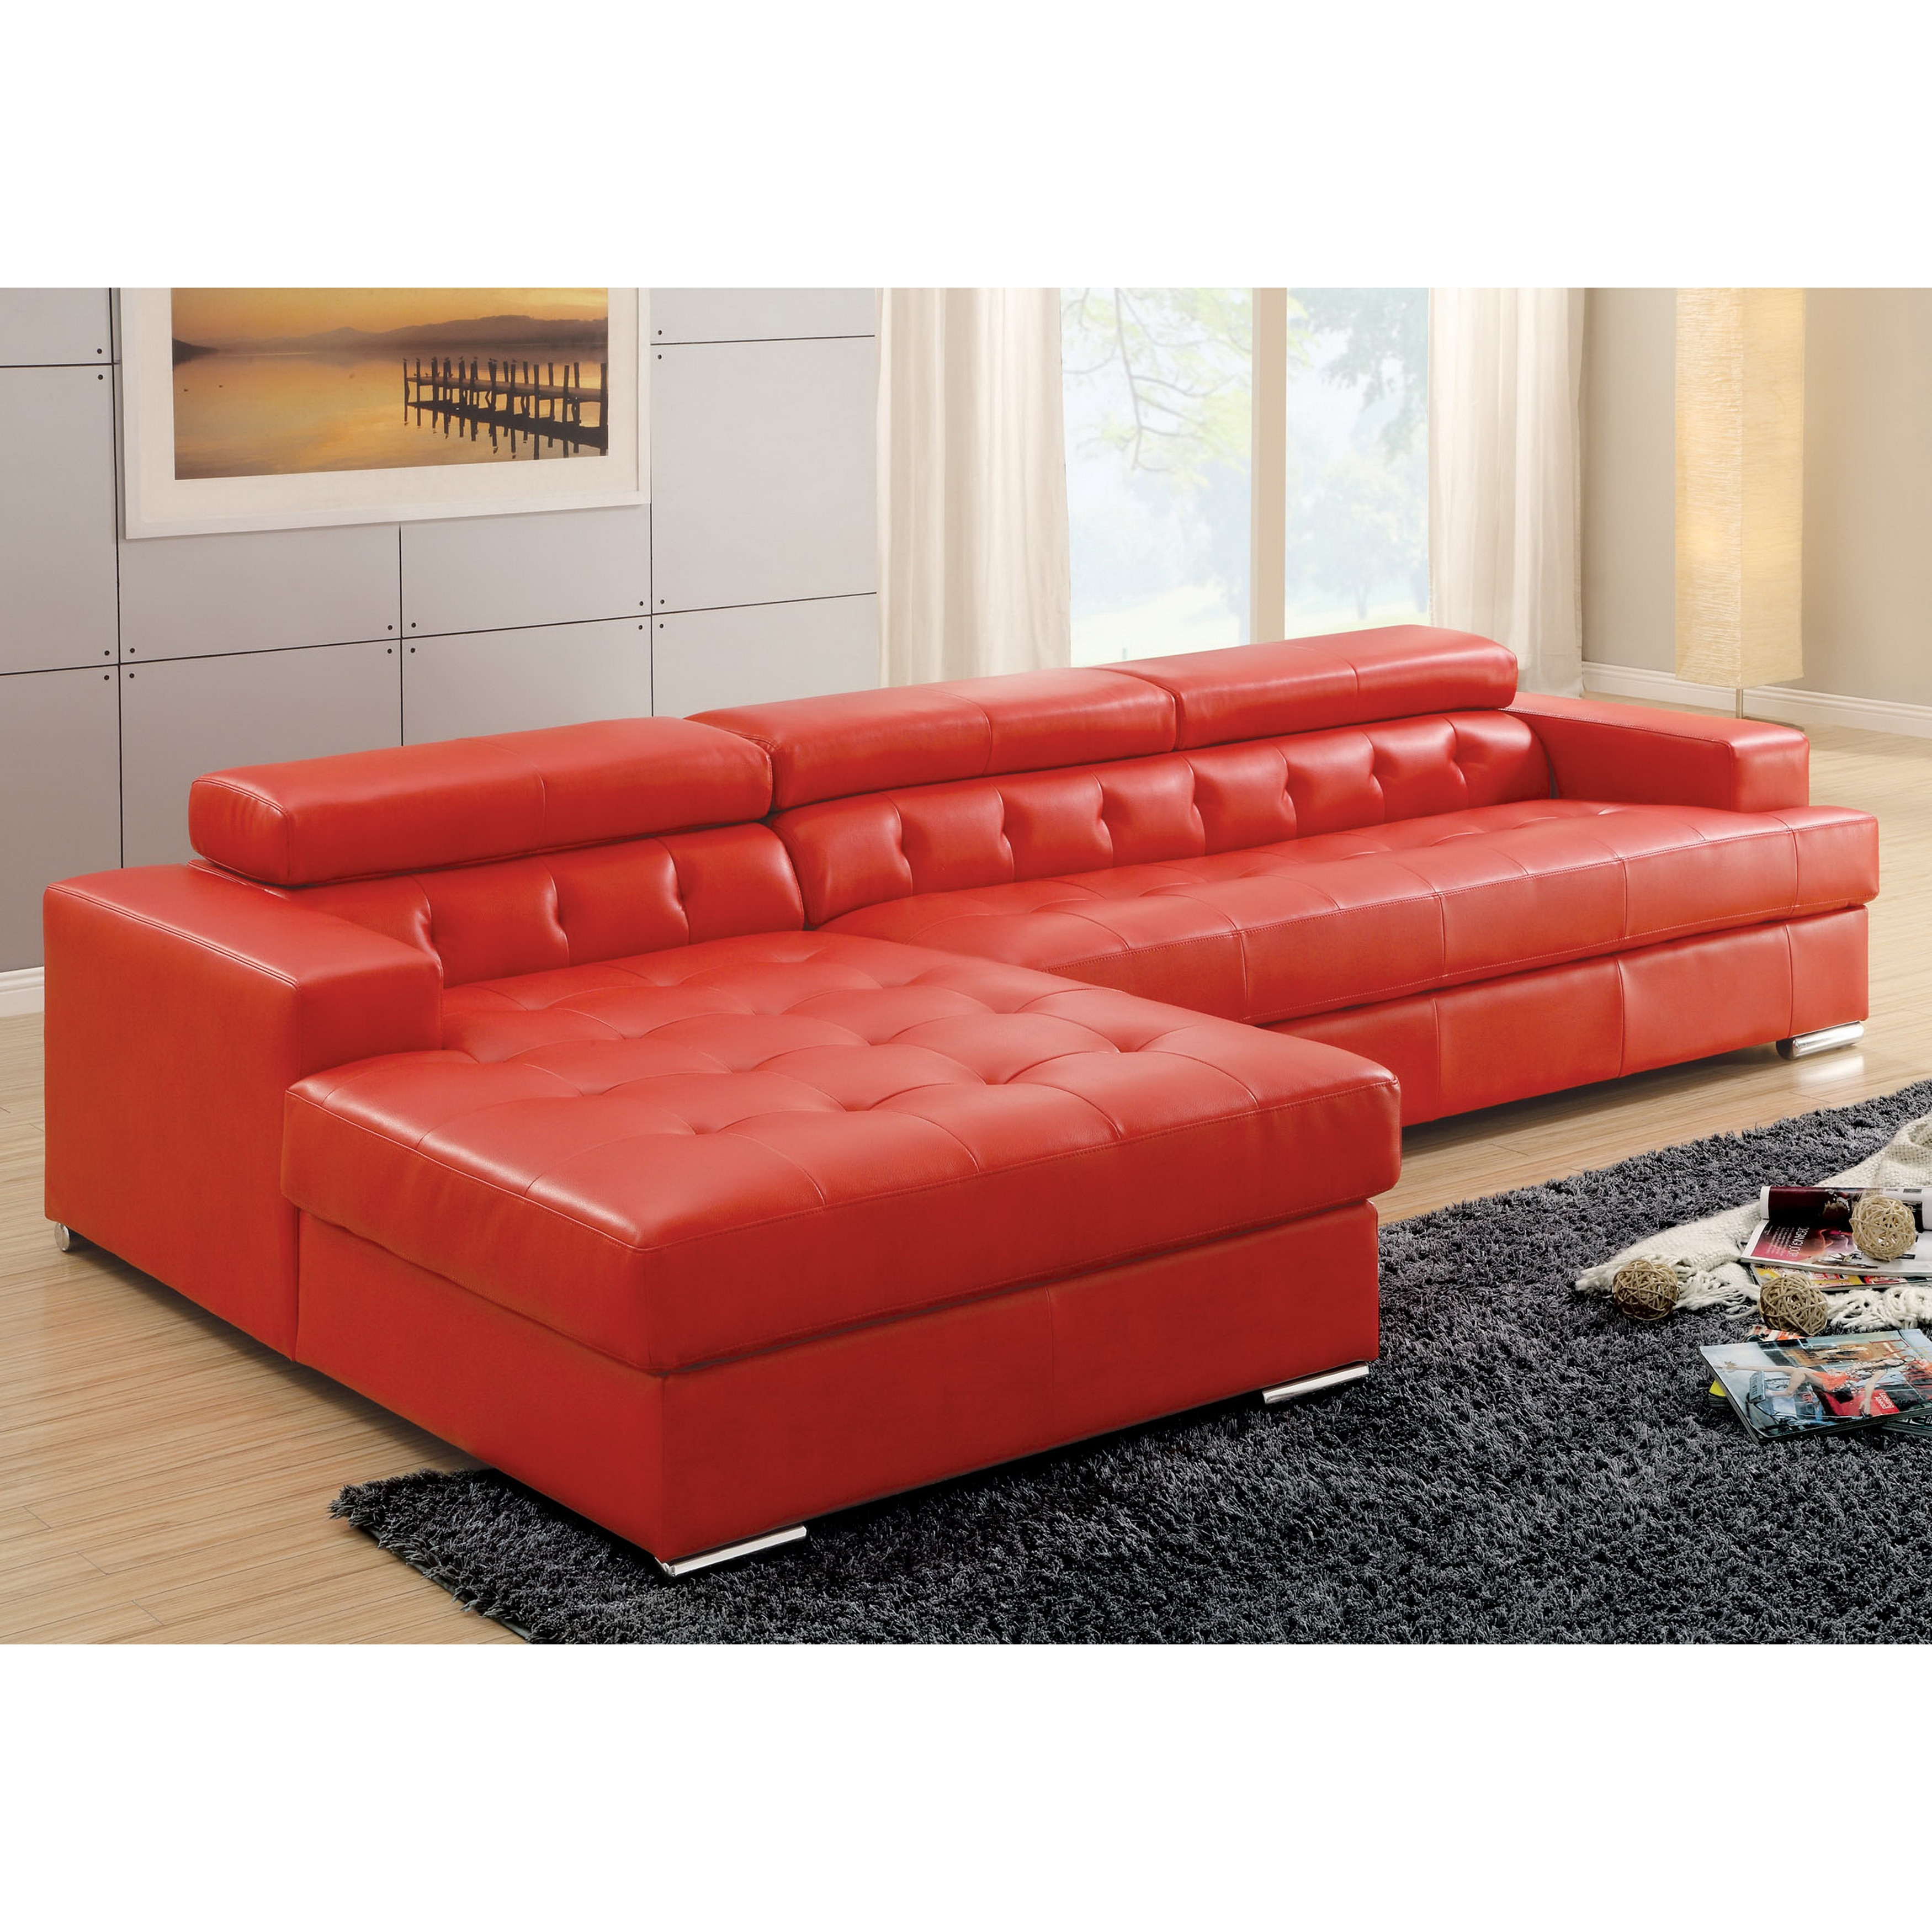 red best of elegant sofa ideas sectional sofas group pit unique design